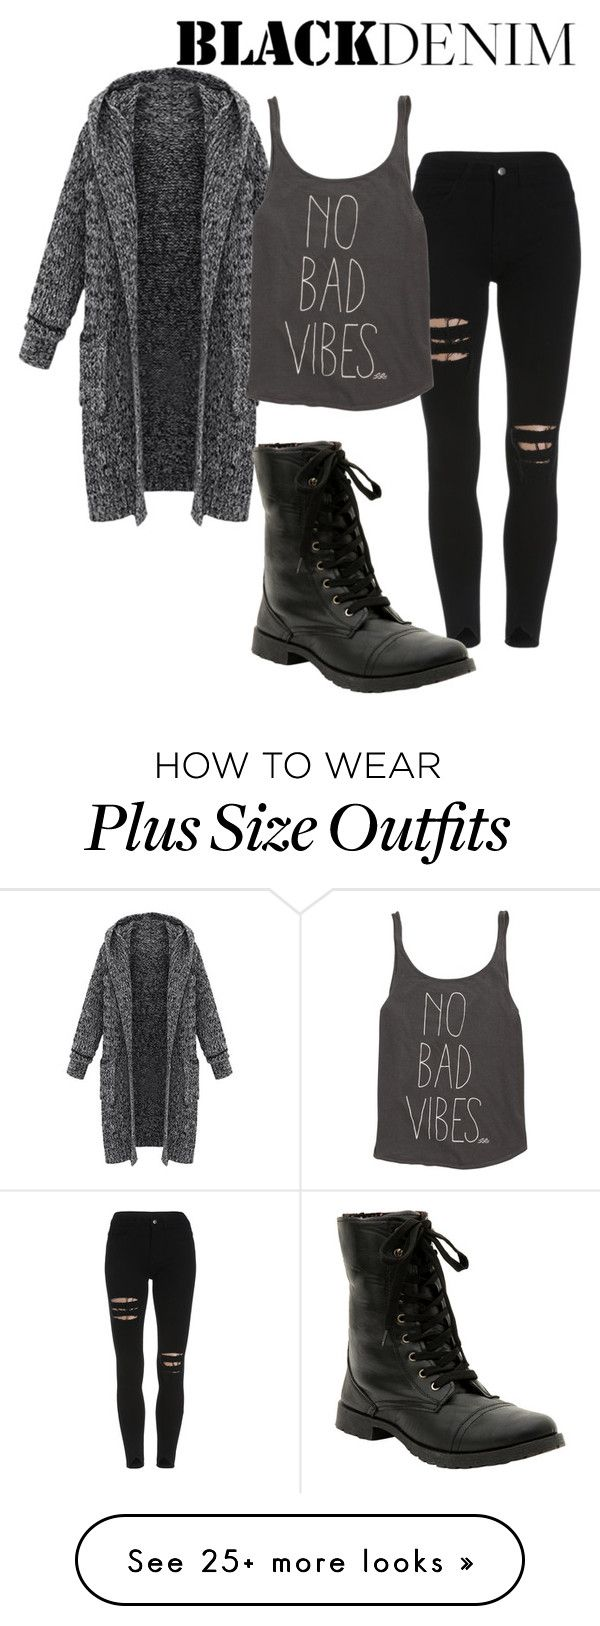 """denim"" by xxmyialolxx on Polyvore featuring Billabong, women's clothing, women's fashion, women, female, woman, misses, juniors and blackdenim"